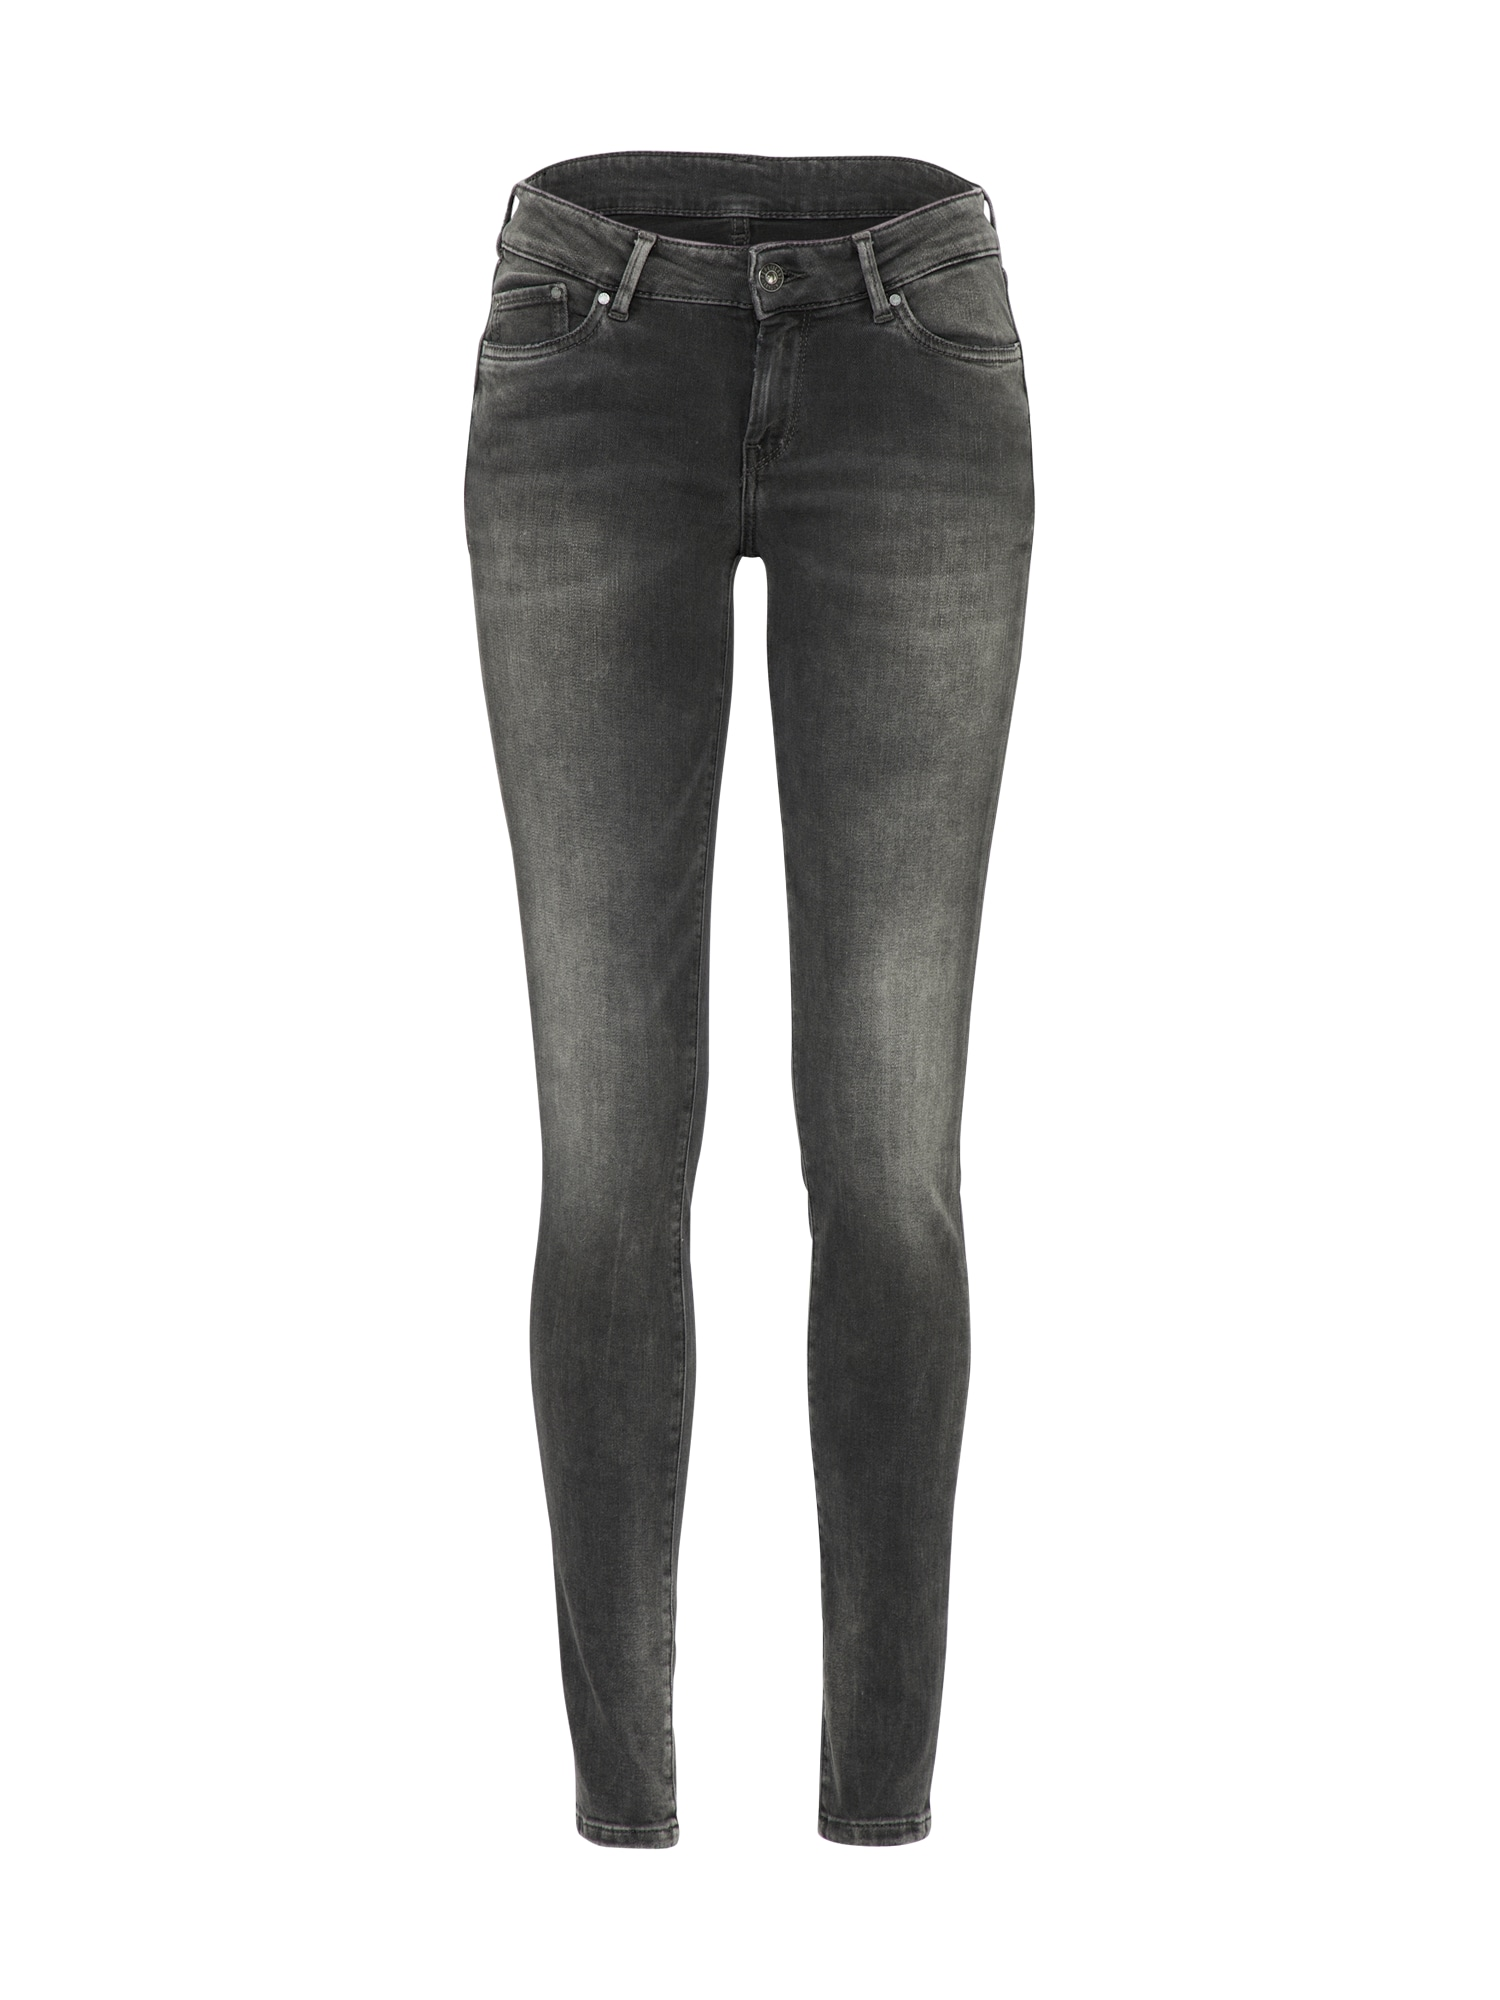 Pepe Jeans Dames Jeans Pixie donkergrijs